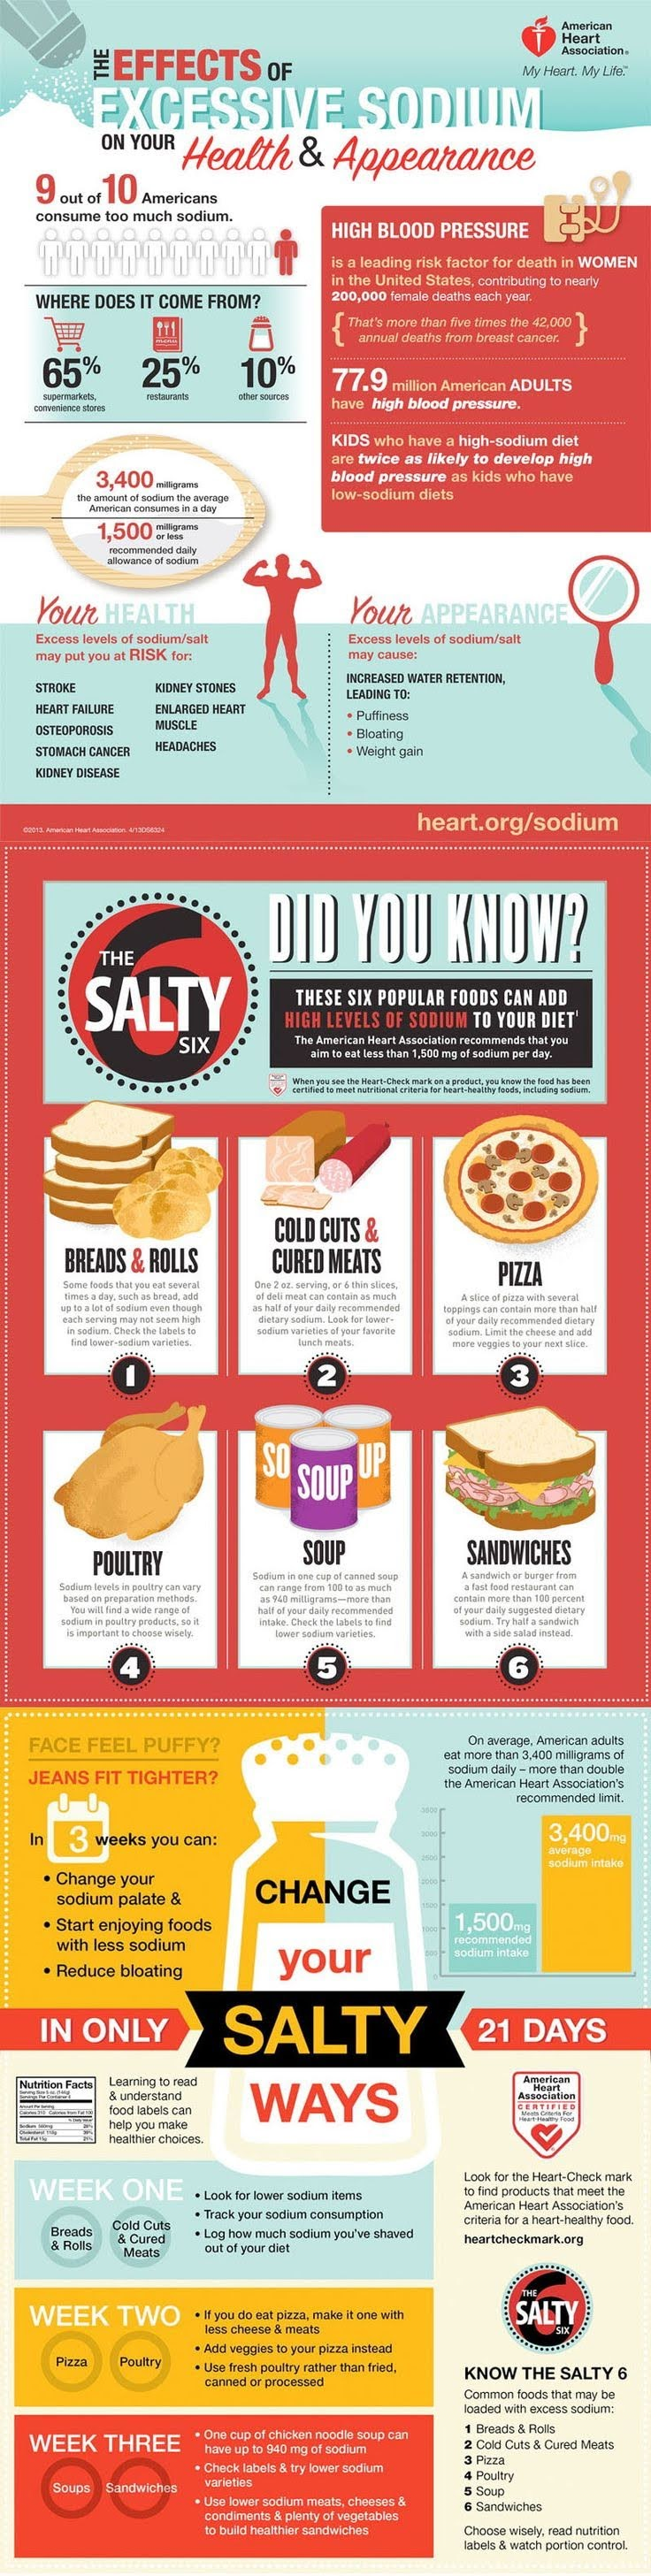 The Effects Of Excessive Sodium On Your Health And Appearance